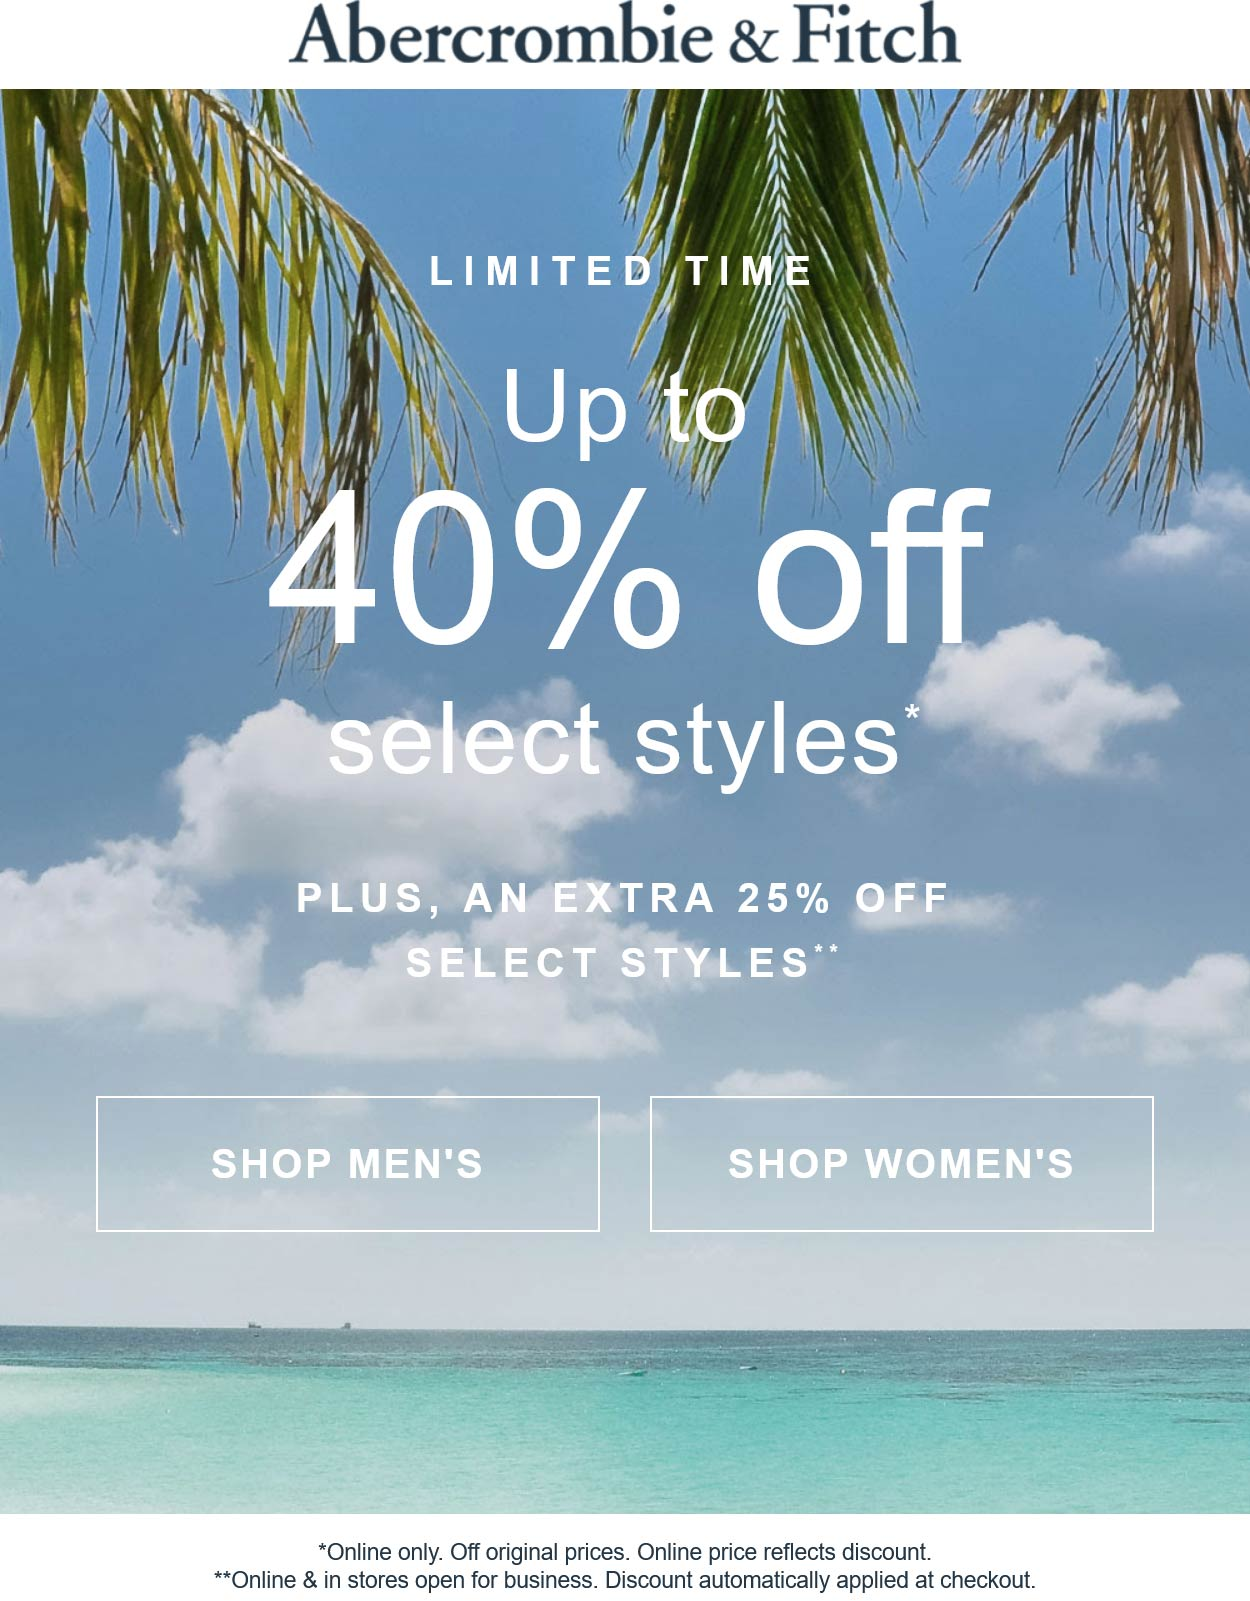 Abercrombie & Fitch coupons & promo code for [September 2021]